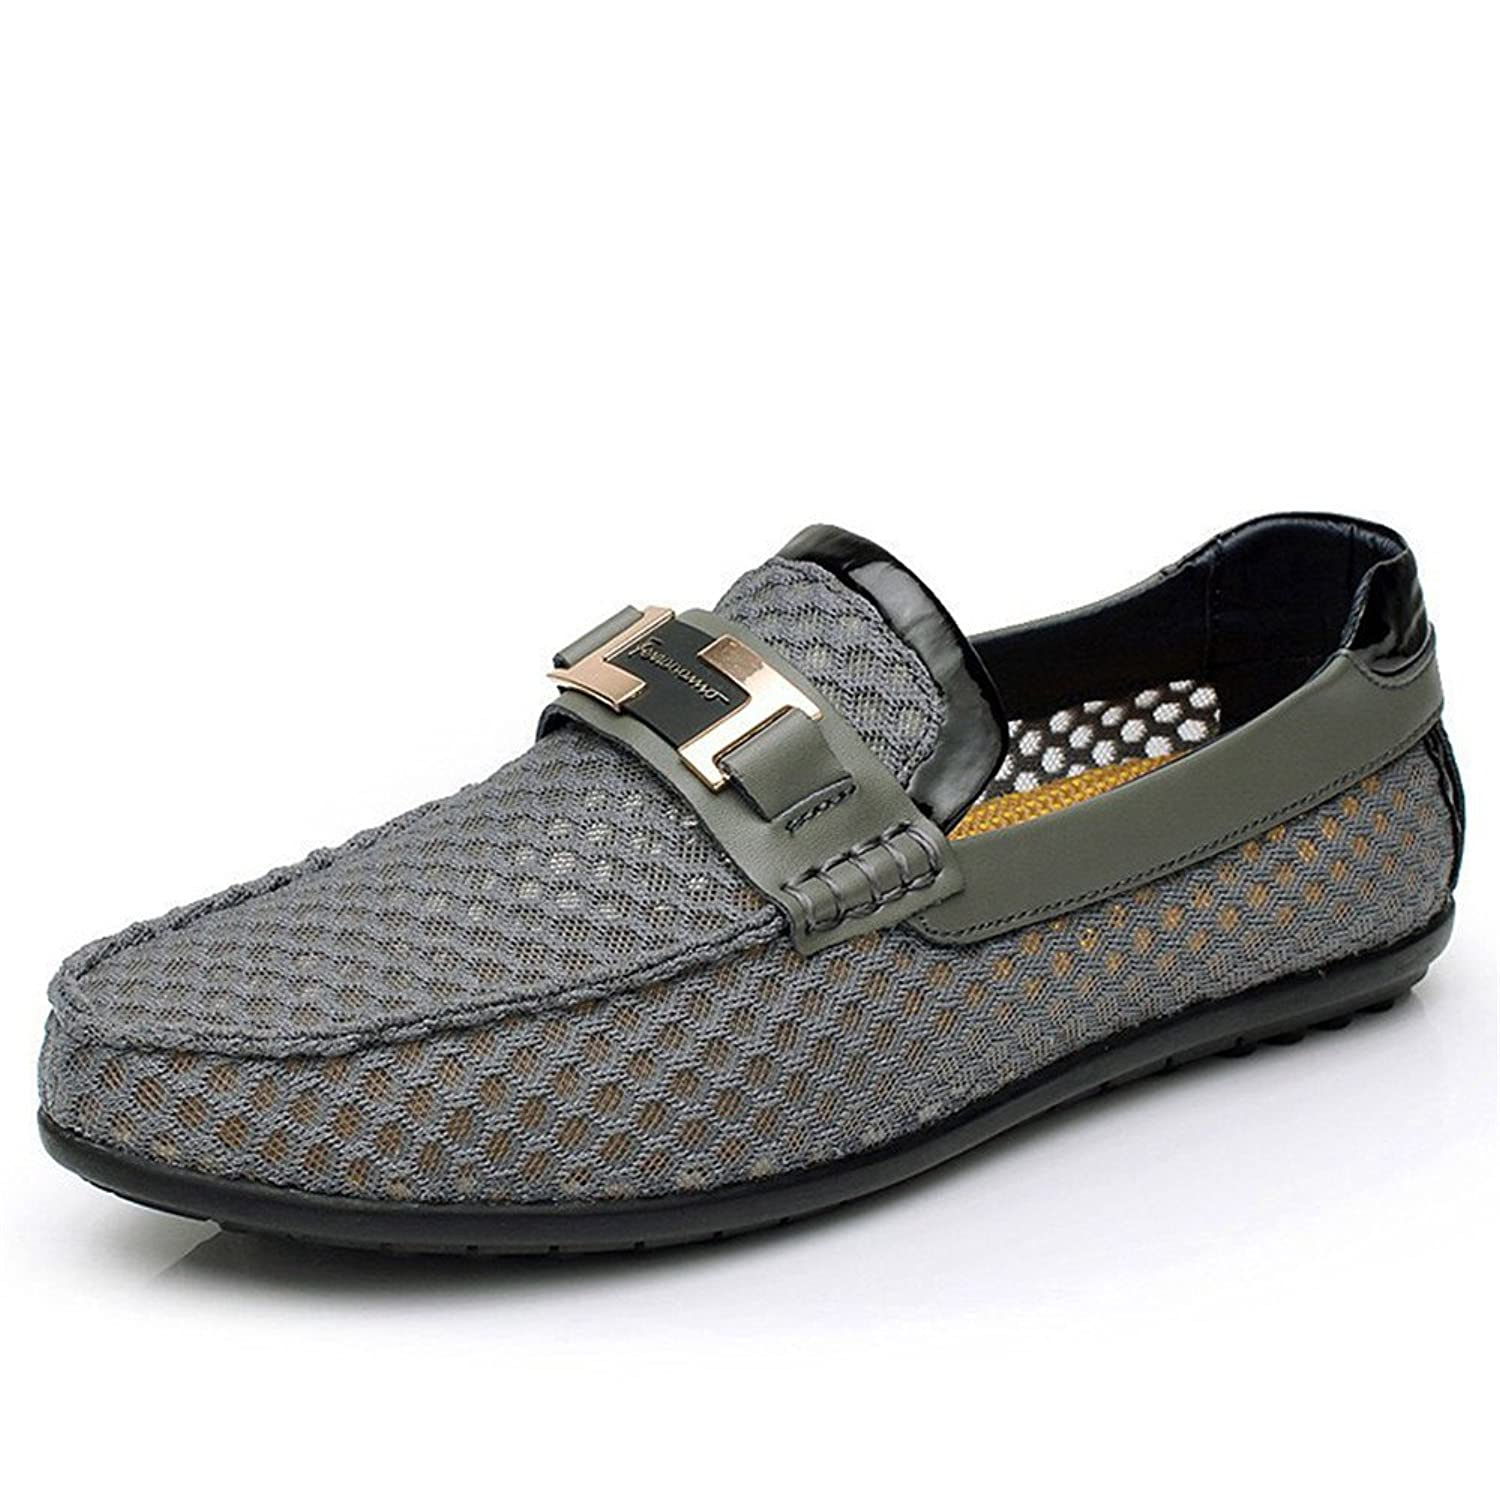 Jin Jiang Wolf Mesh Slip-on Walking Quick Dry Loafer Water Shoes